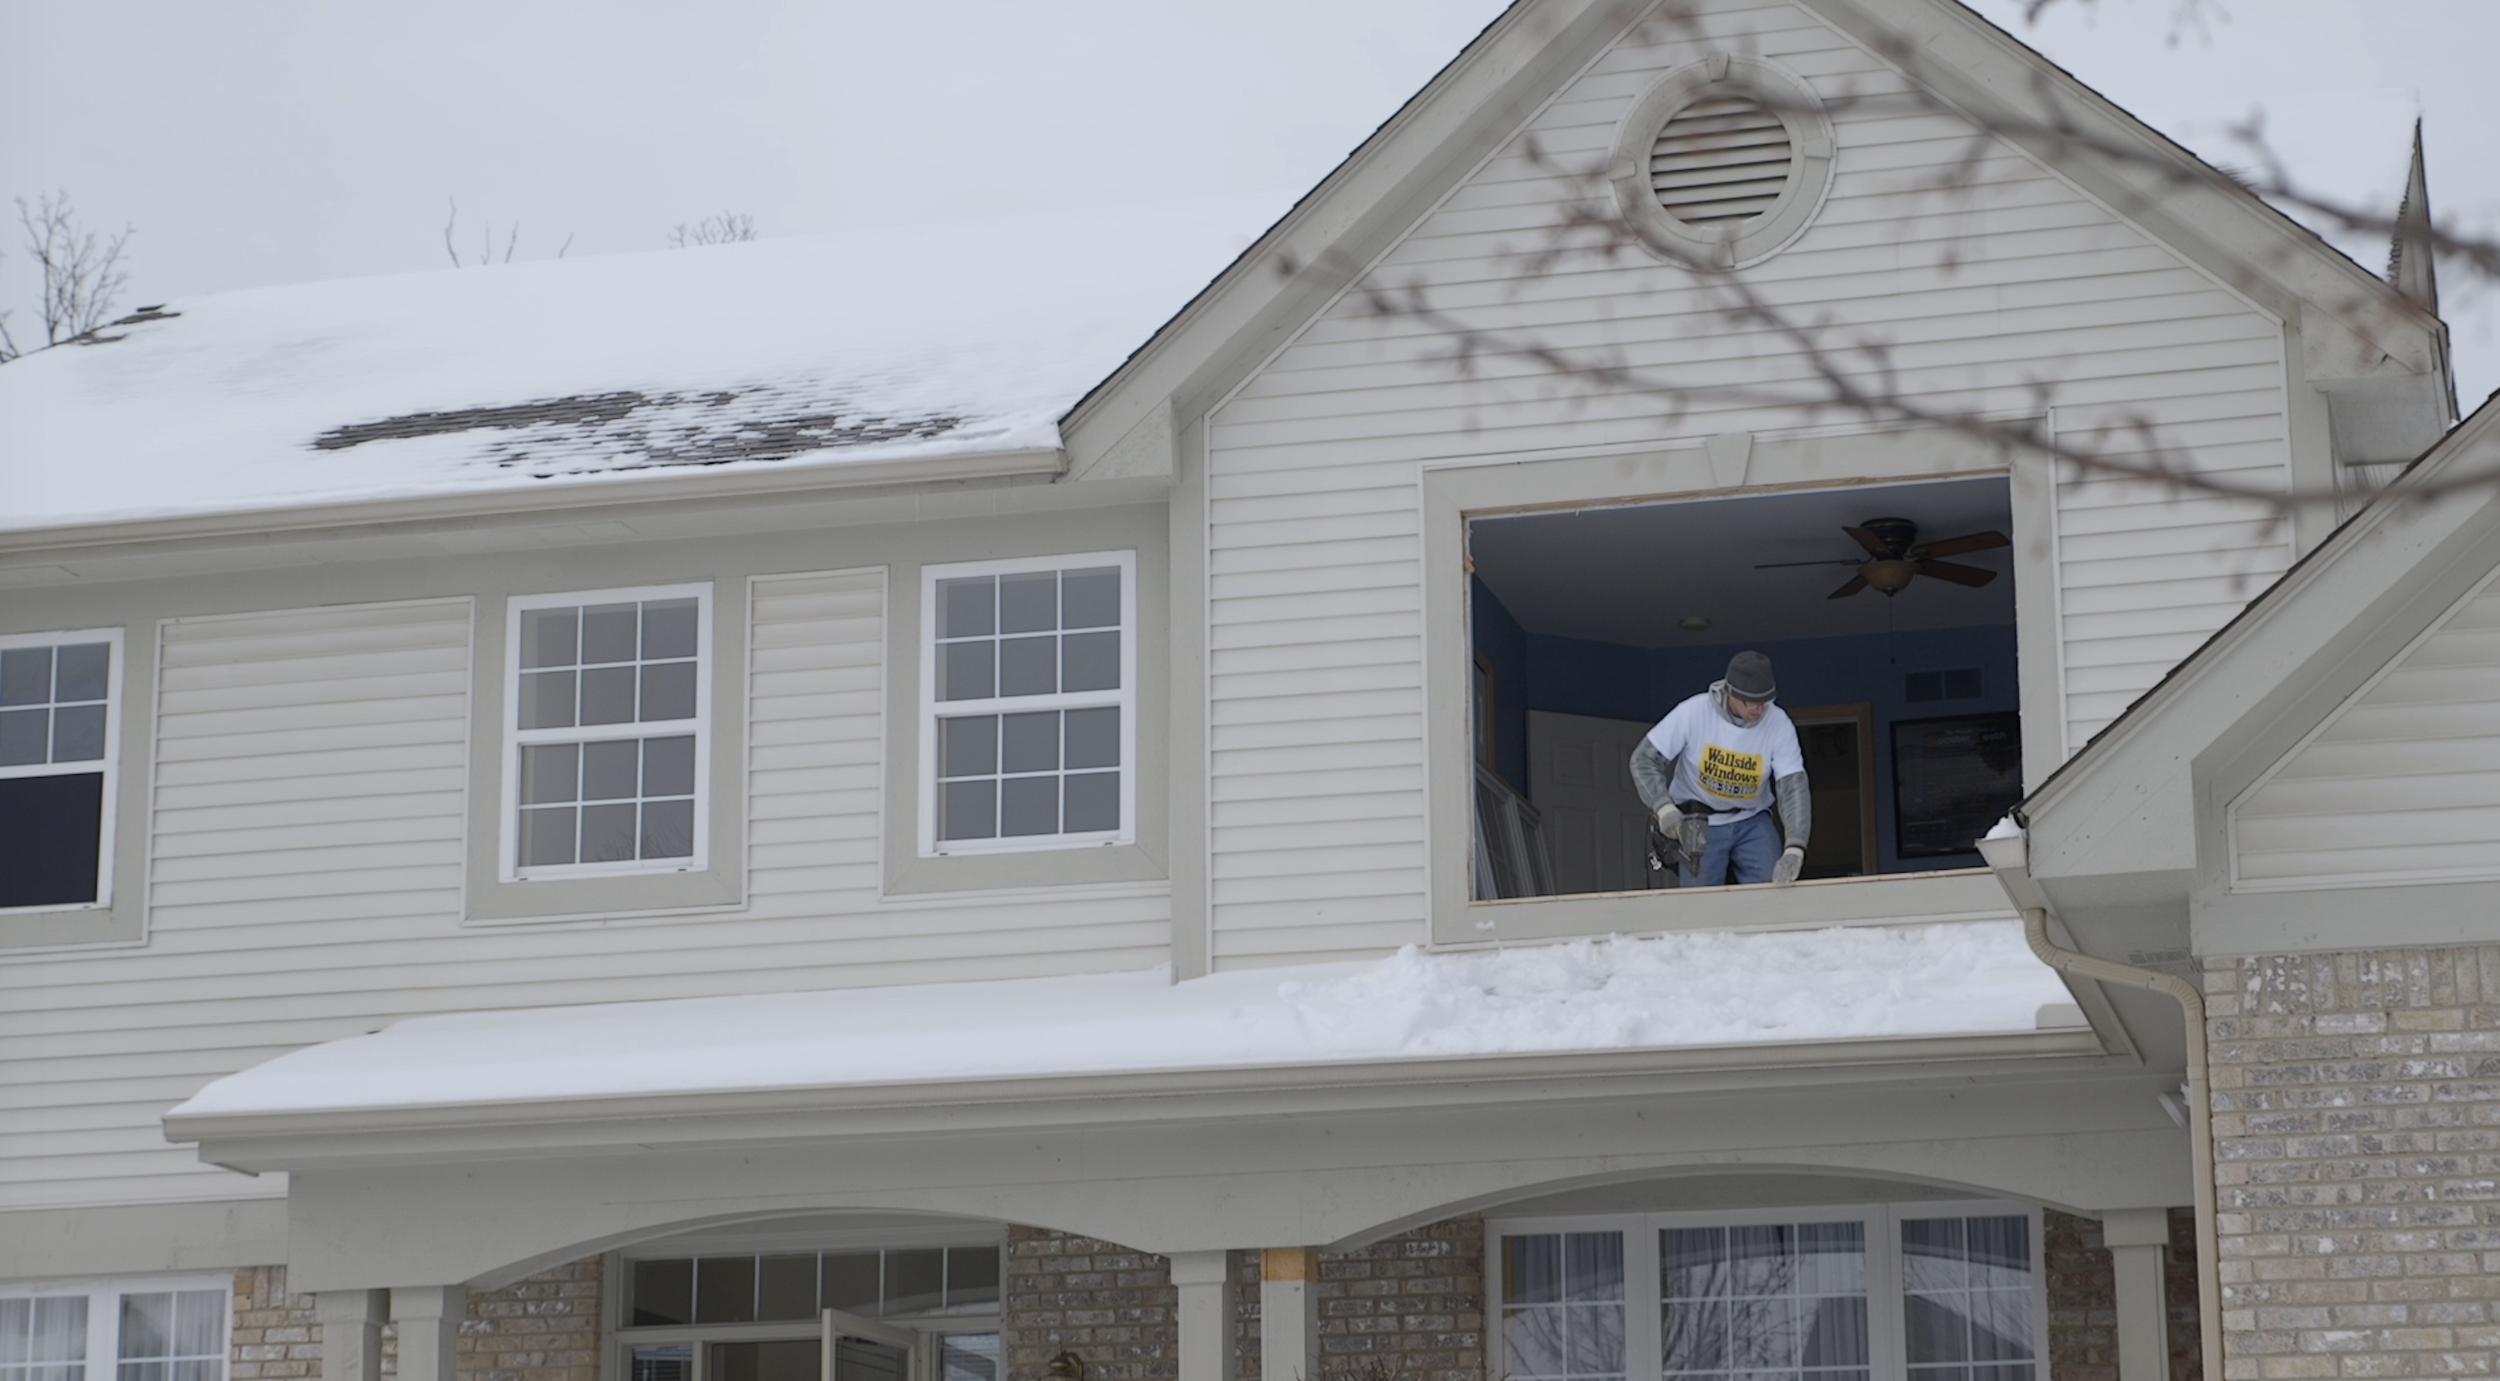 Find out how to stay warm all winter, by replacing your windows.